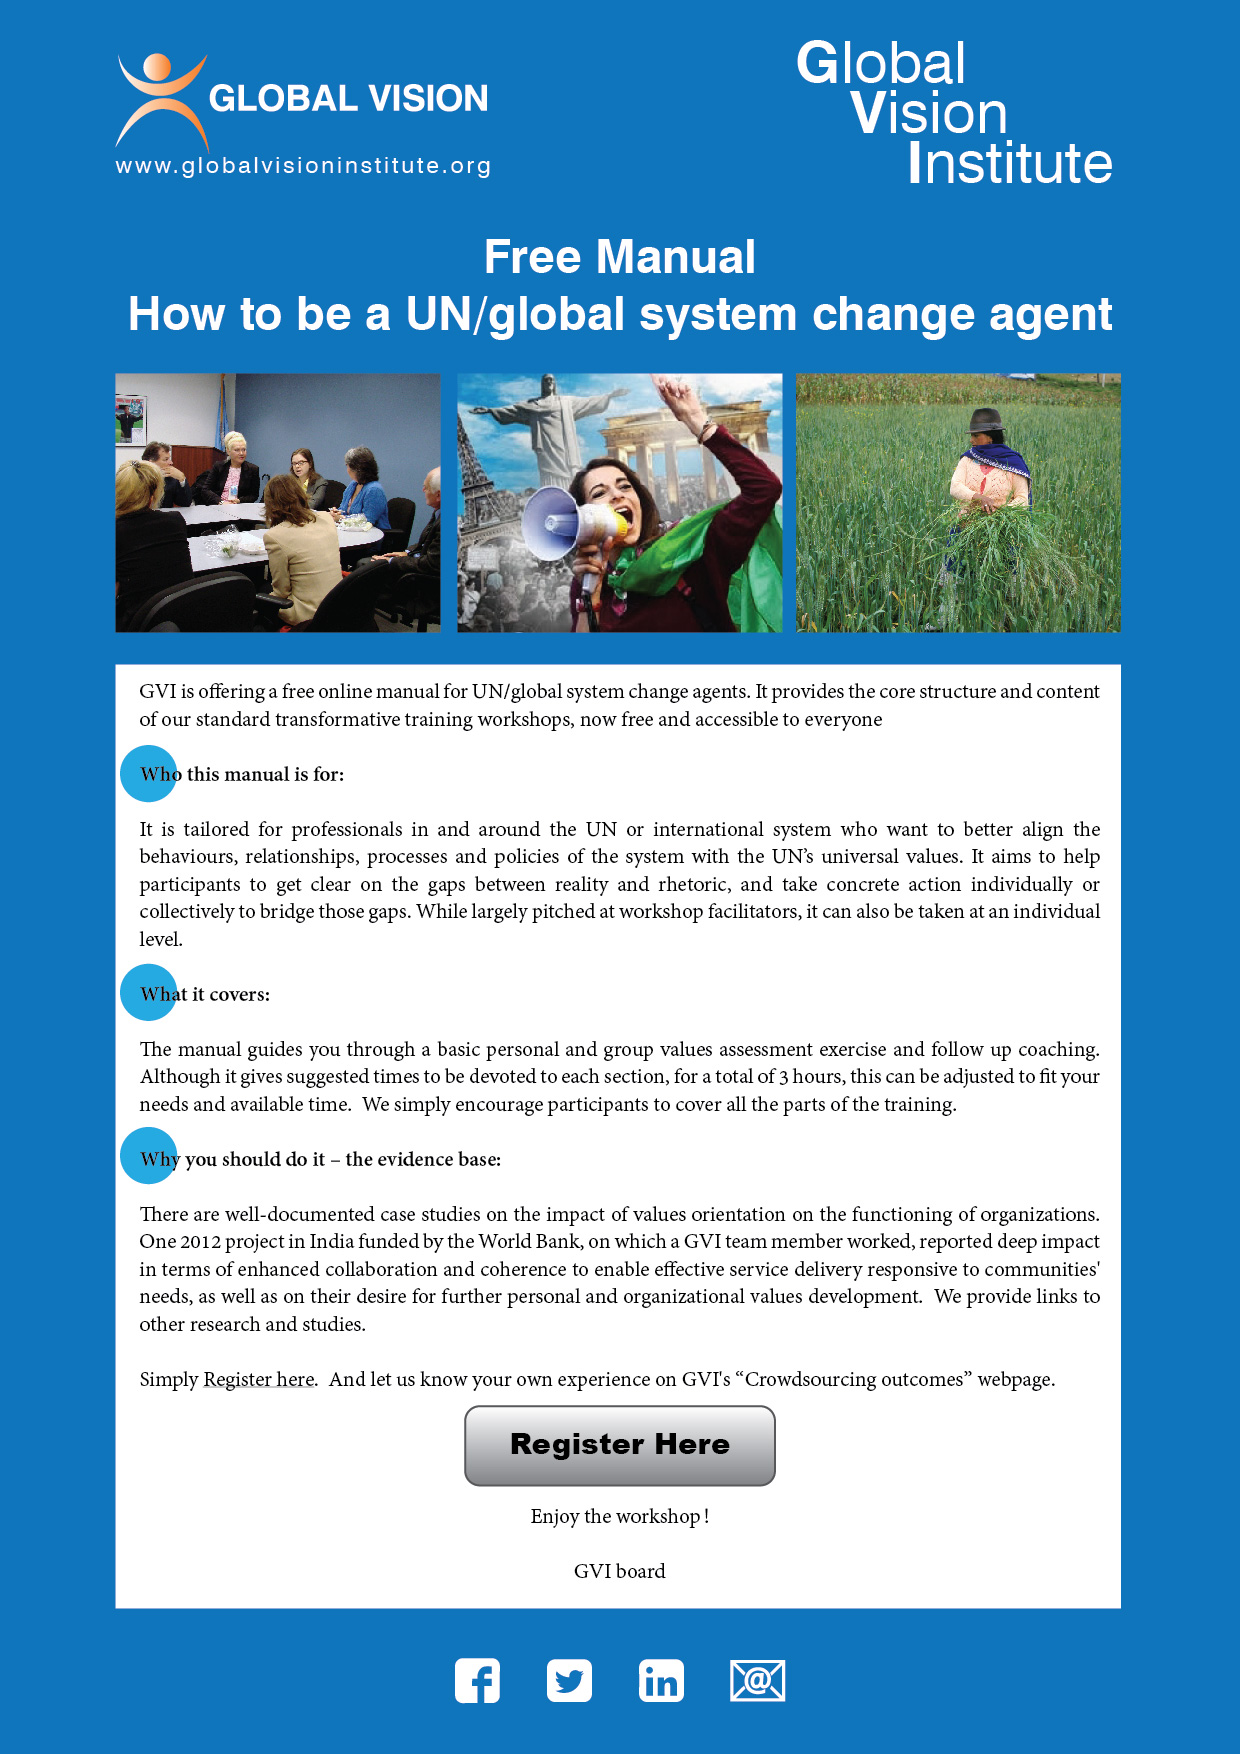 Webinars and Manual: How to be a UN change agent - Global Vision